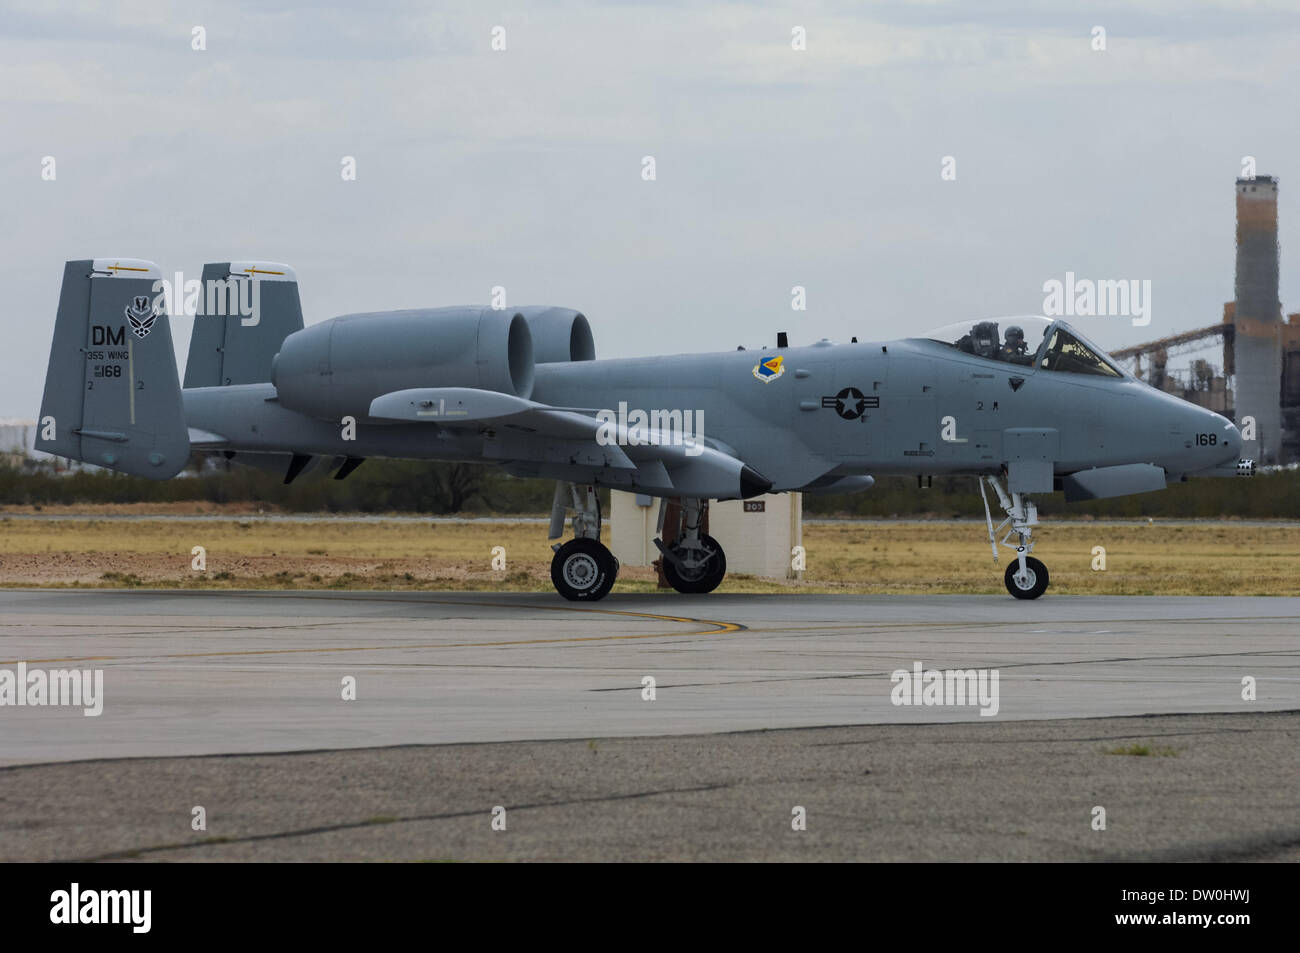 March 17, 2007 - Tucson, Arizona, United States of America - An A-10 aircraft taxis on the runway at Davis-Monthan AFB in Tucson, Ariz. in this 2007 file photo. Davis-Monthan is home to the 355th Wing, which supports the A-10. The Pentagon announced yesterday plans to retire the A-10 as a cost-cutting measure to prepare for eventual delivery of the F-35 multipurpose fighter. The A-10 has served since late in the Vietnam War through contemporary fighting in Afghanistan and Iraq. The aircraft is generally praised by pilots and service crews for its survivability and performance. (Credit Imag - Stock Image